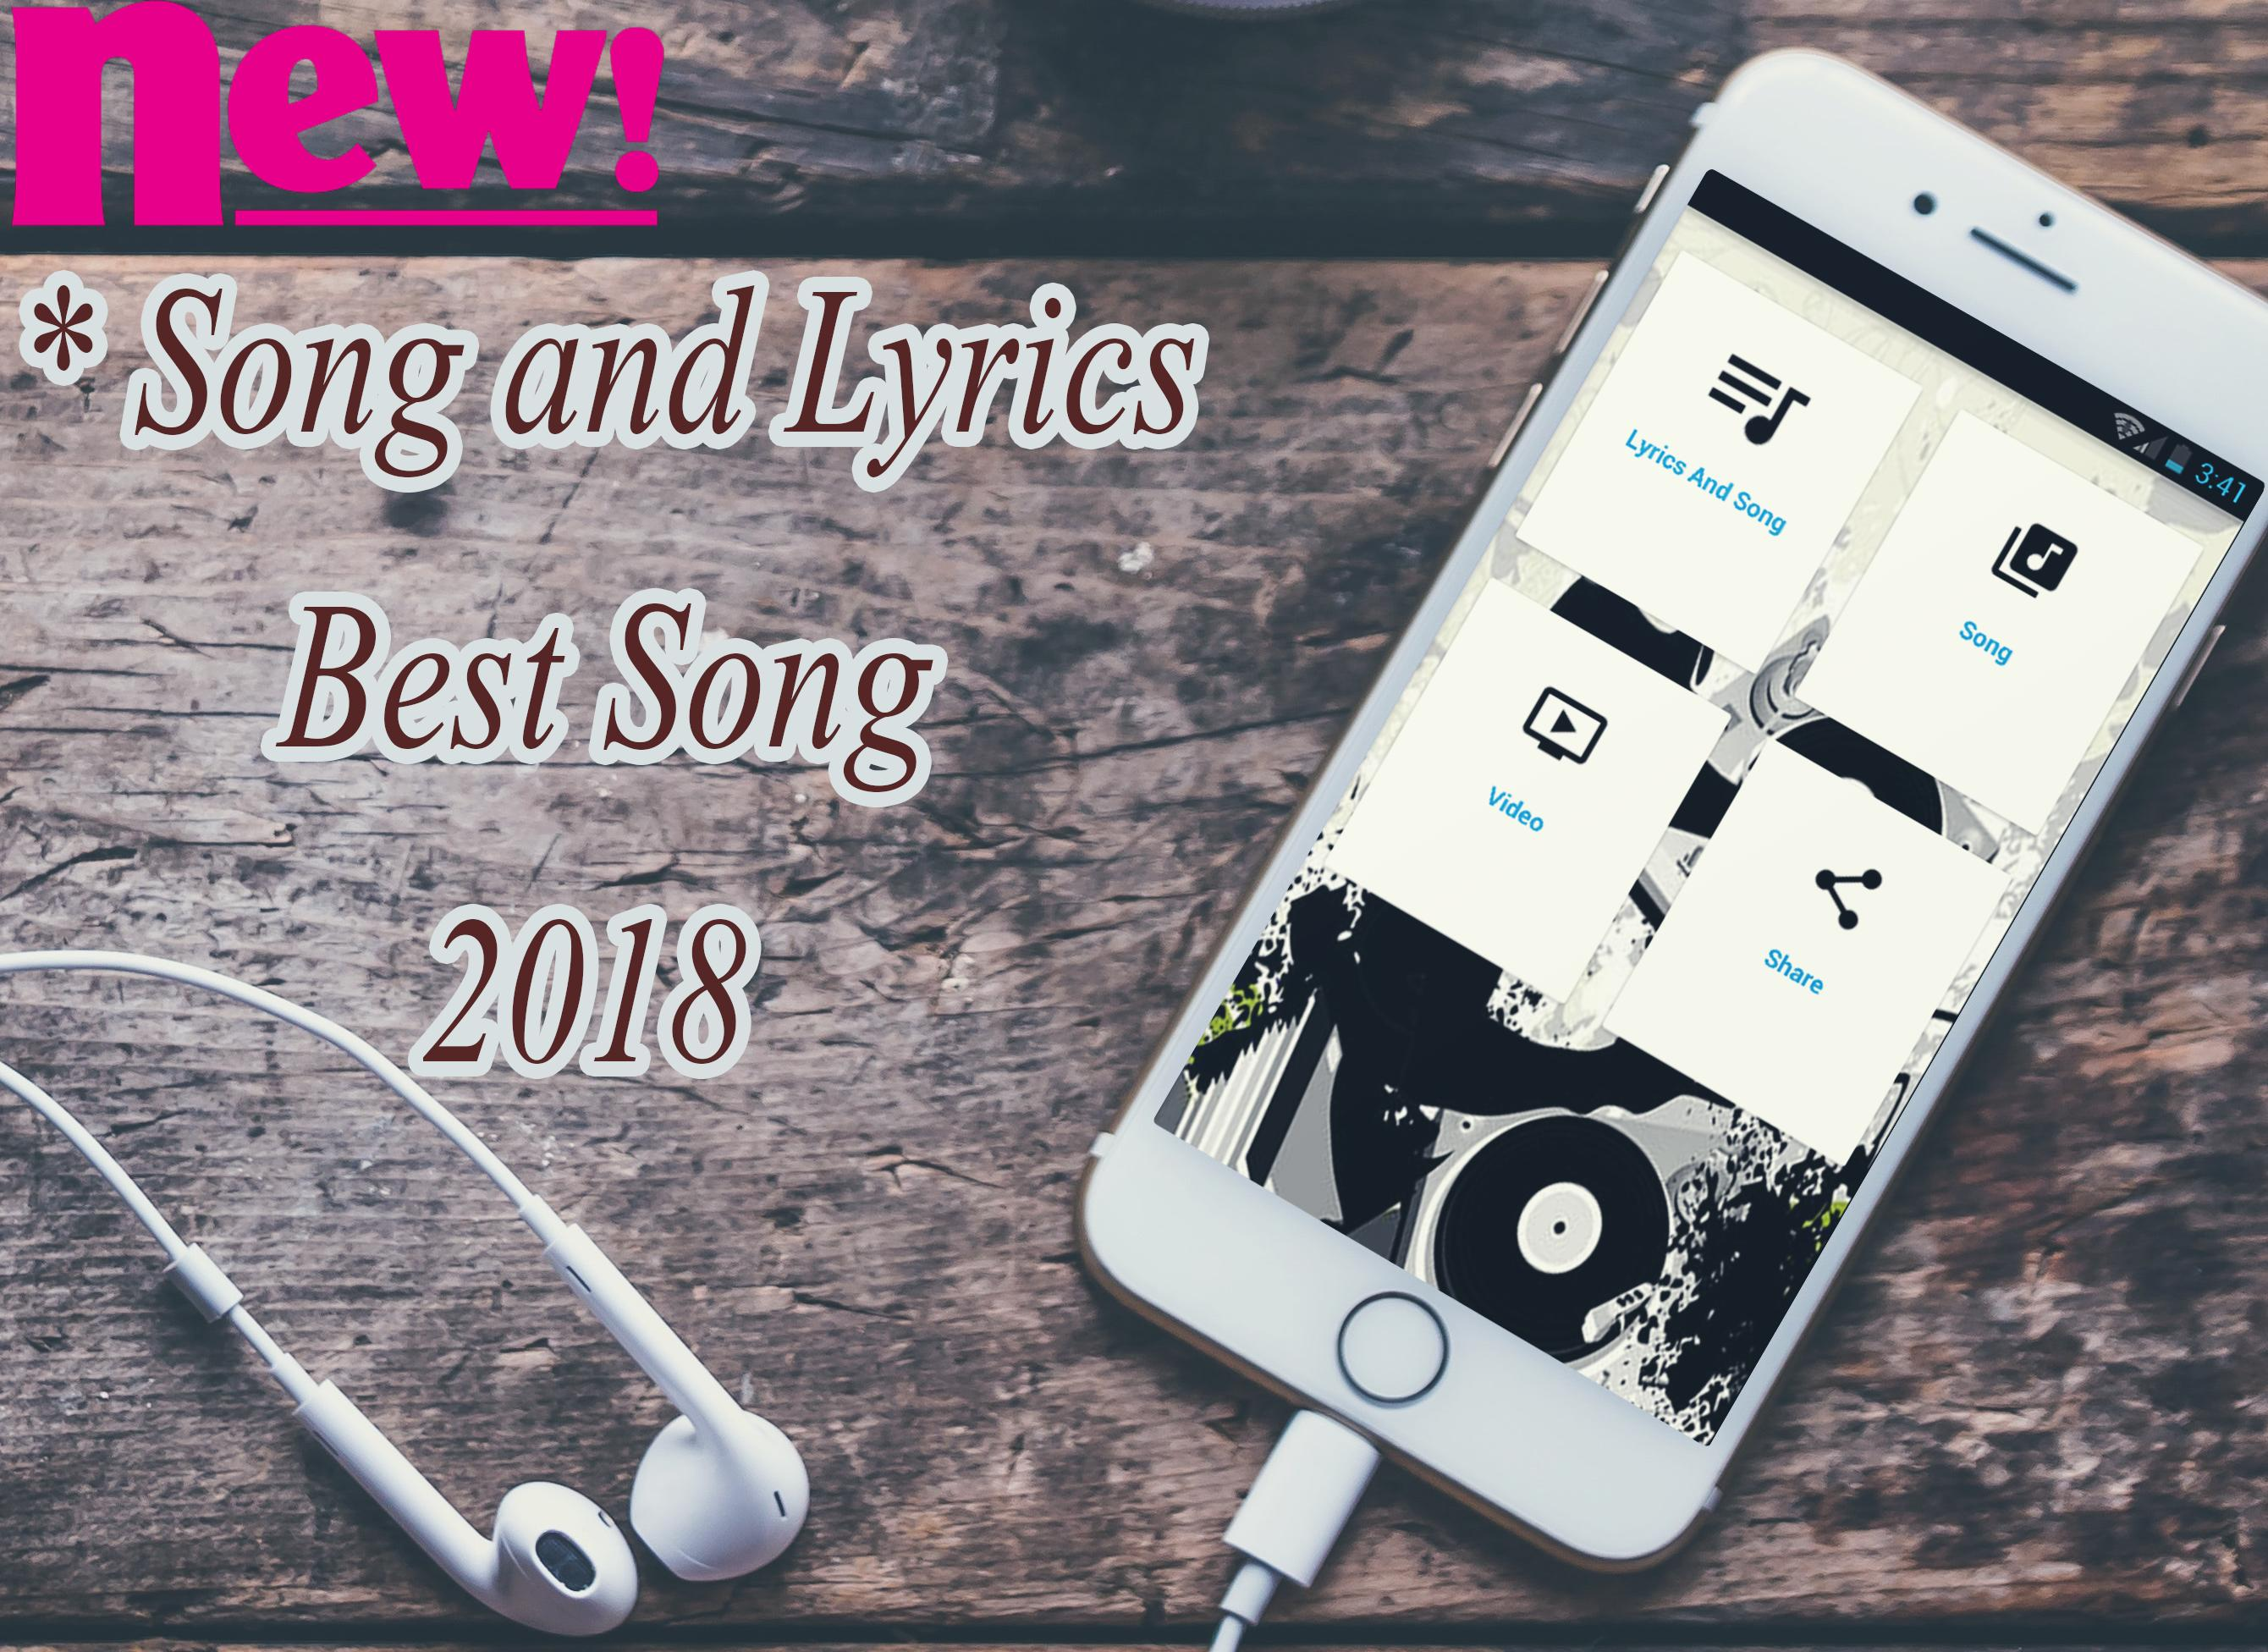 Bee Gees - Stayin' Alive Song and lyrics for Android - APK